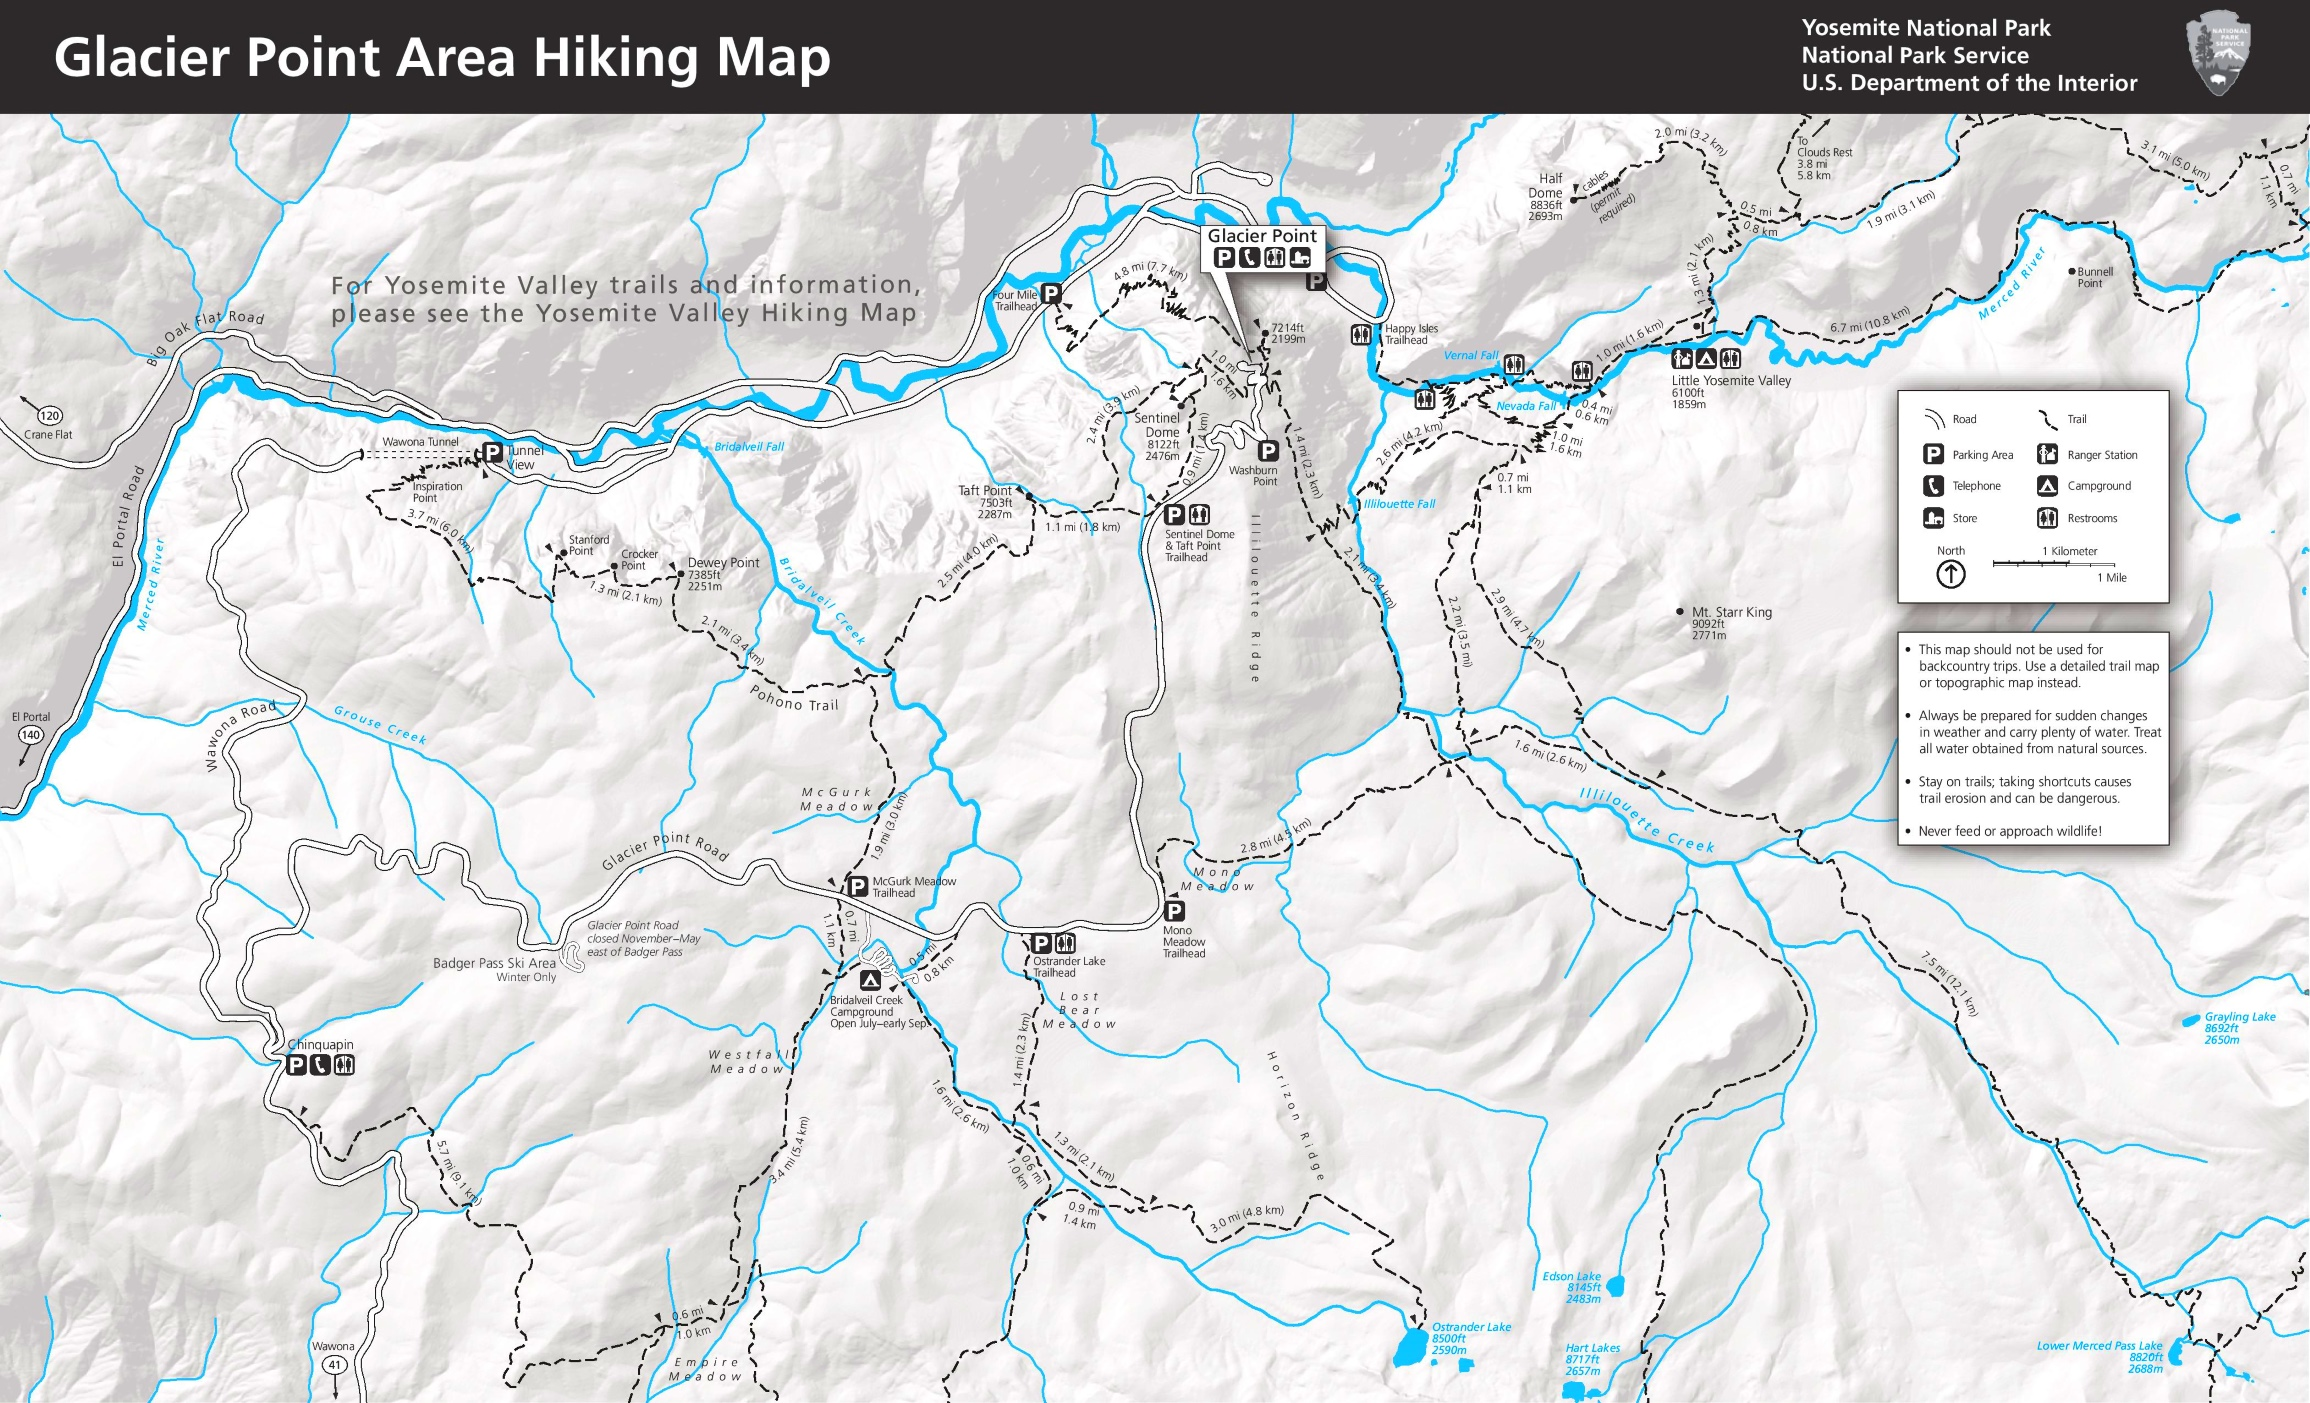 Yosemite Glacier Point area hiking map